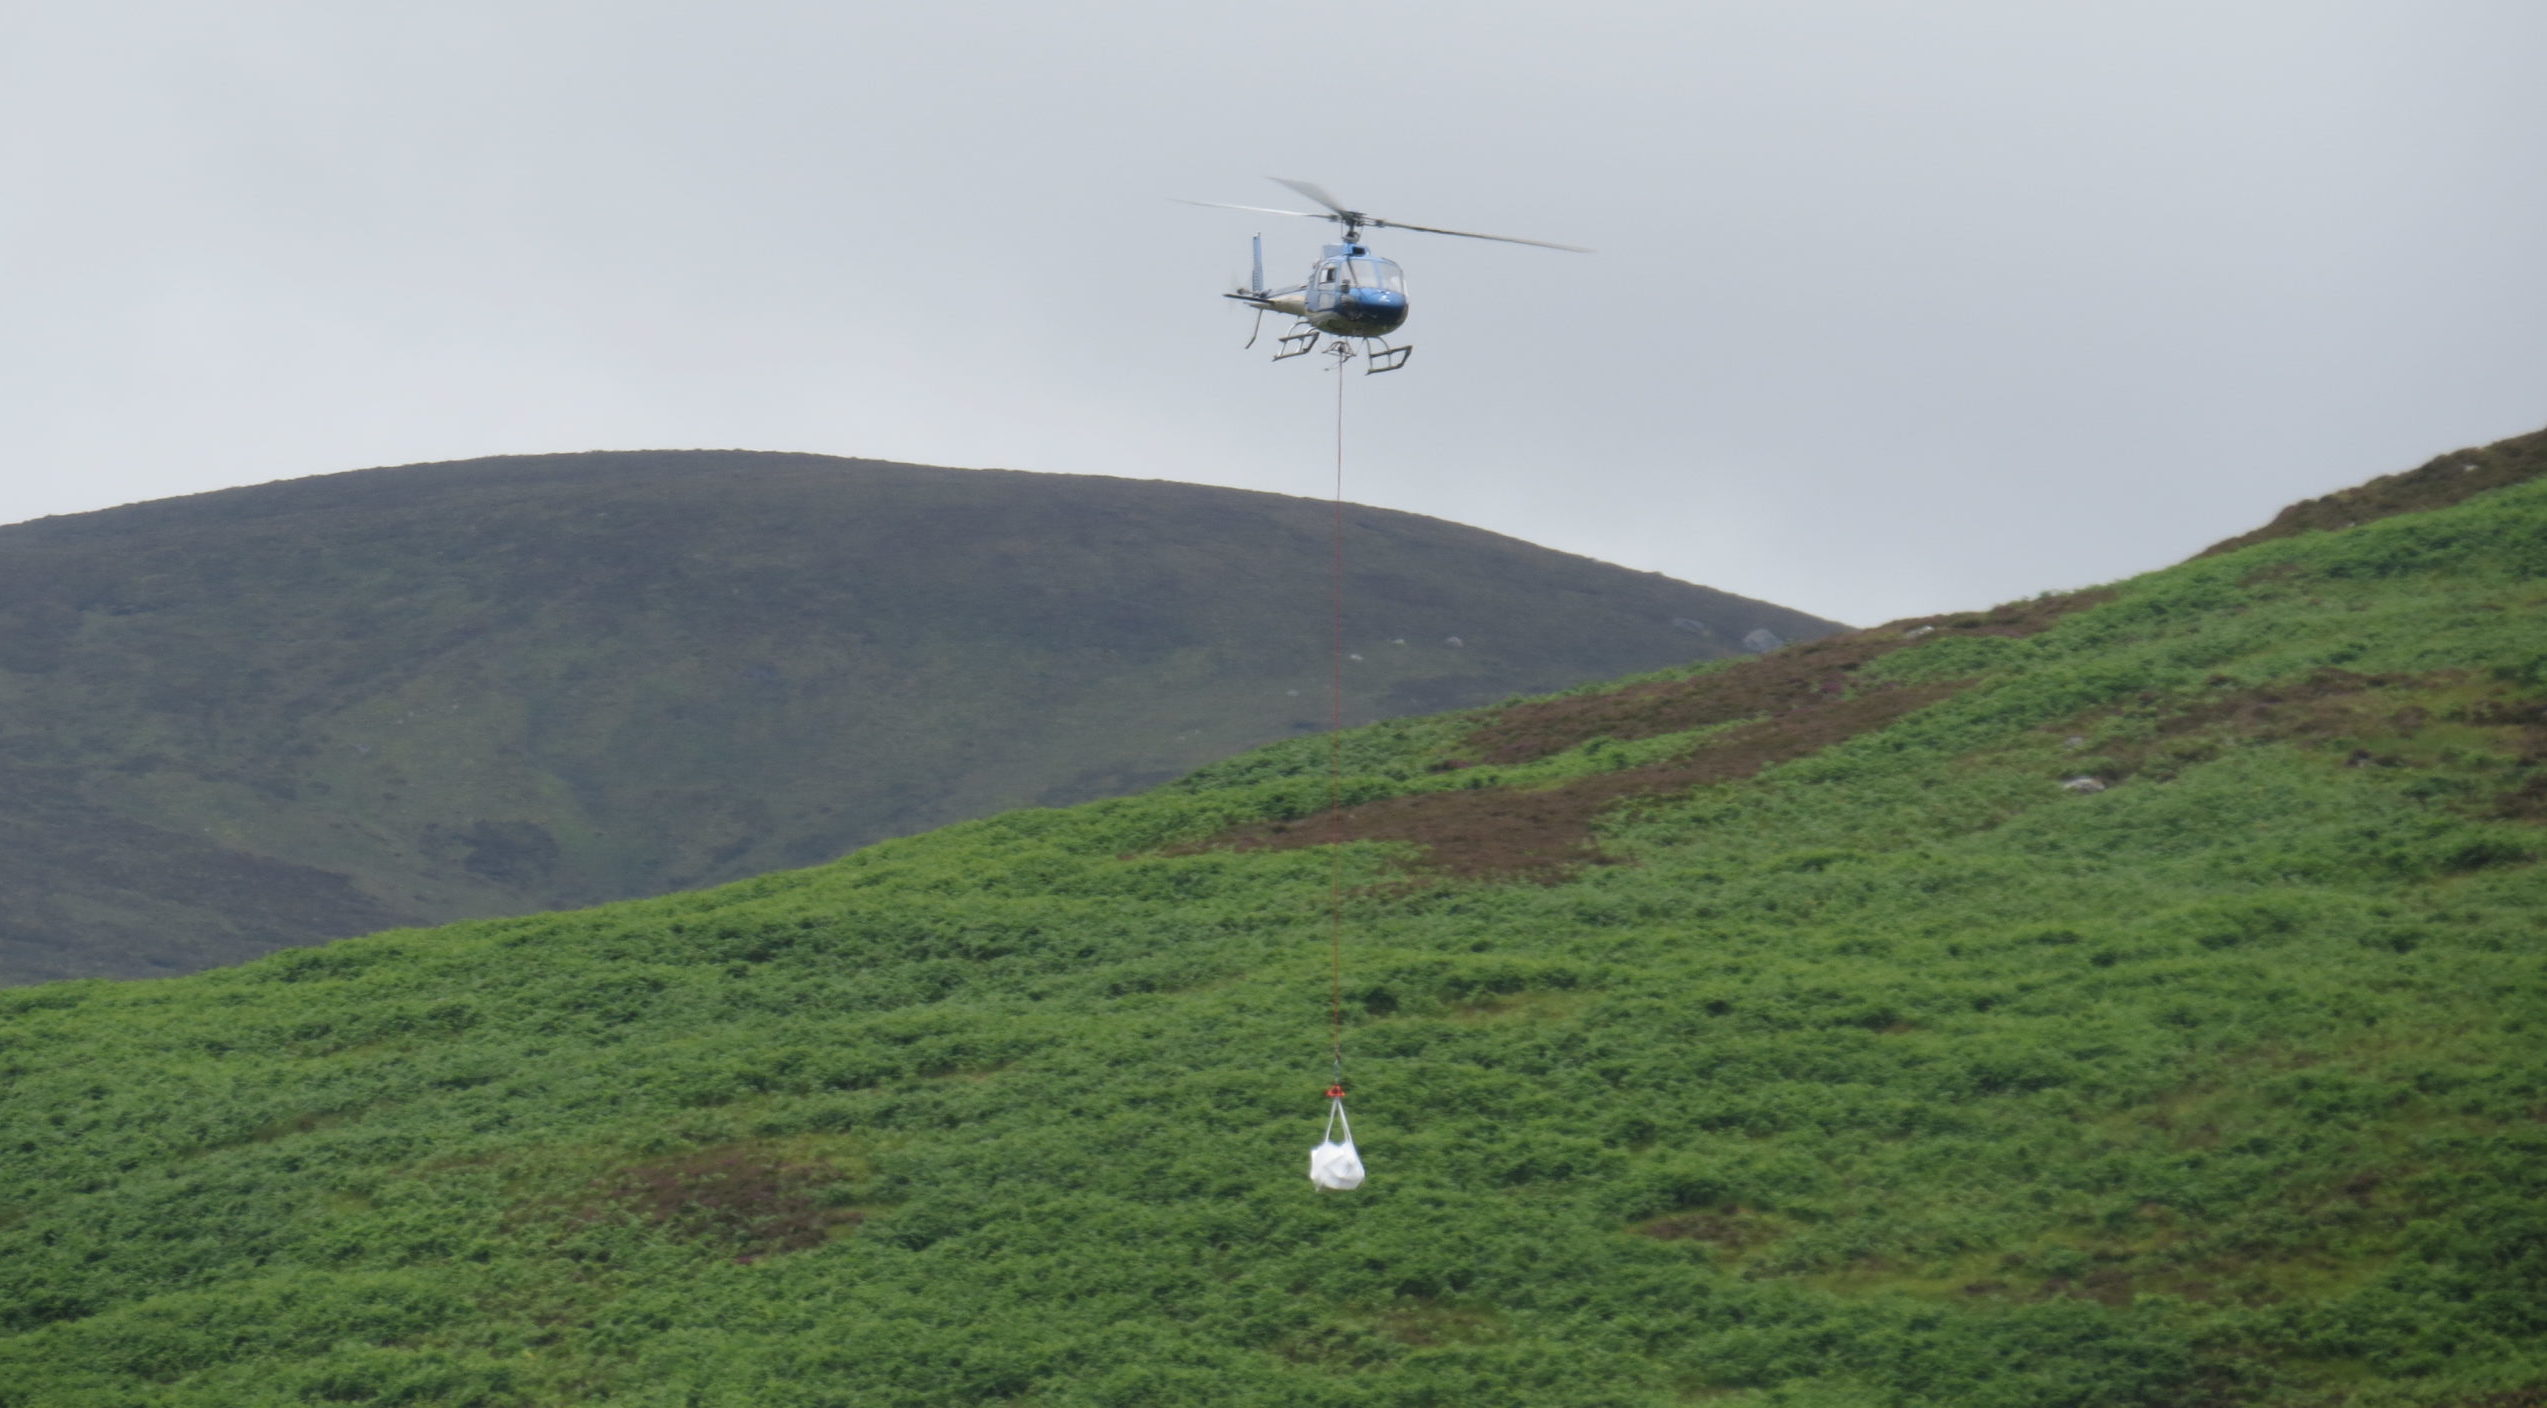 Materials were airlifted into Schiehallion this week.